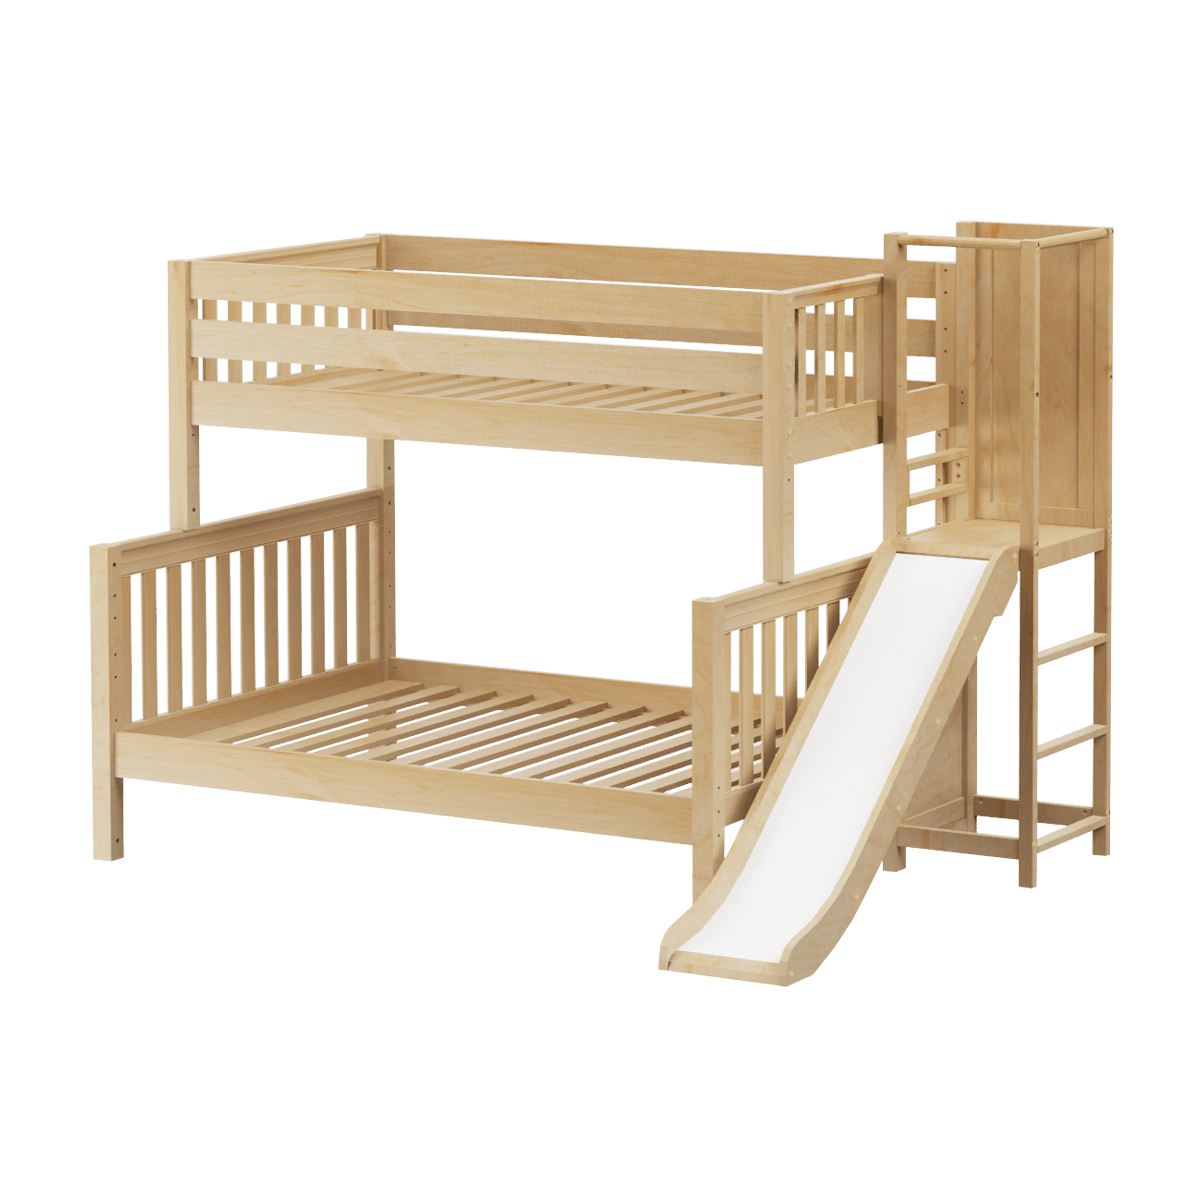 Single Over Double Bunk Bed With Slide Modular Collection Bed With Slide Bunk Bed With Slide Full Bunk Beds Single over double bunk bed